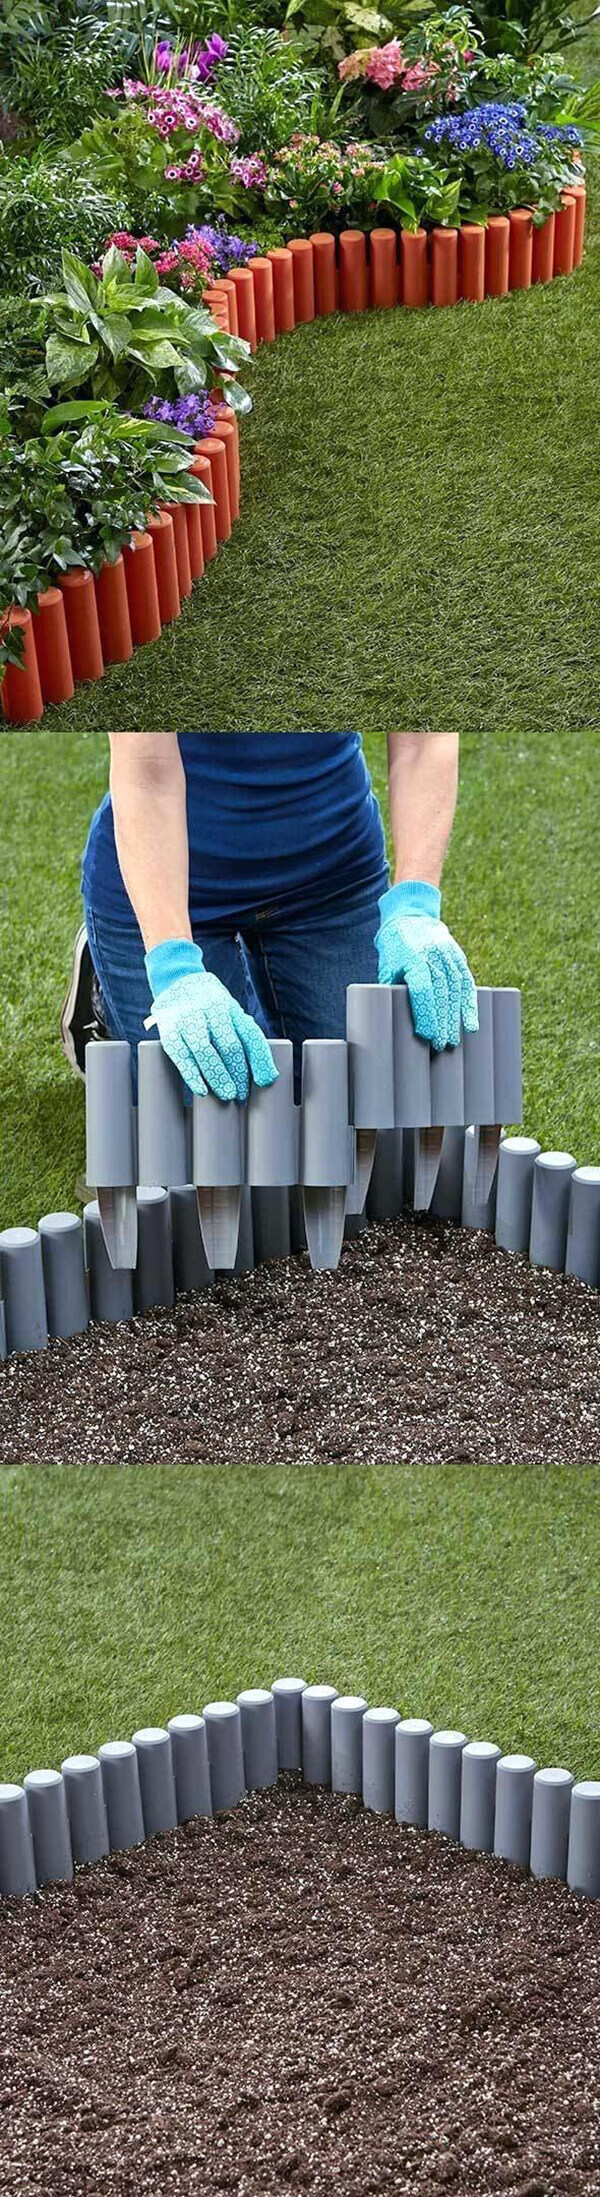 Painted PVC Stakes Around Flower Garden